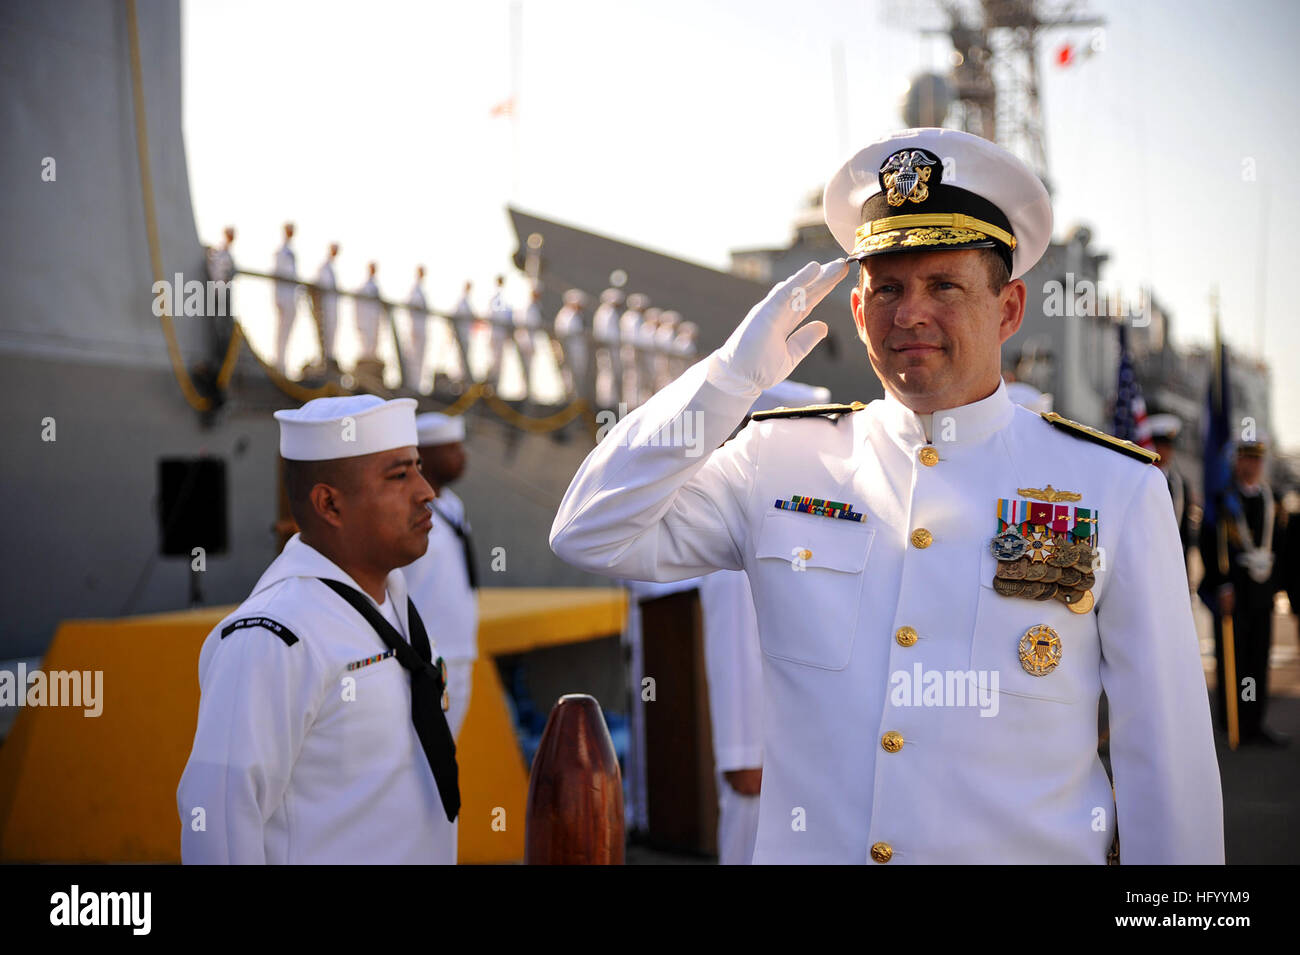 110729-N-YR391-001 MAYPORT, Fla. (July 29, 2011) Rear Adm. Anthony Kurta, director of Military Personnel Plans and - Stock Image